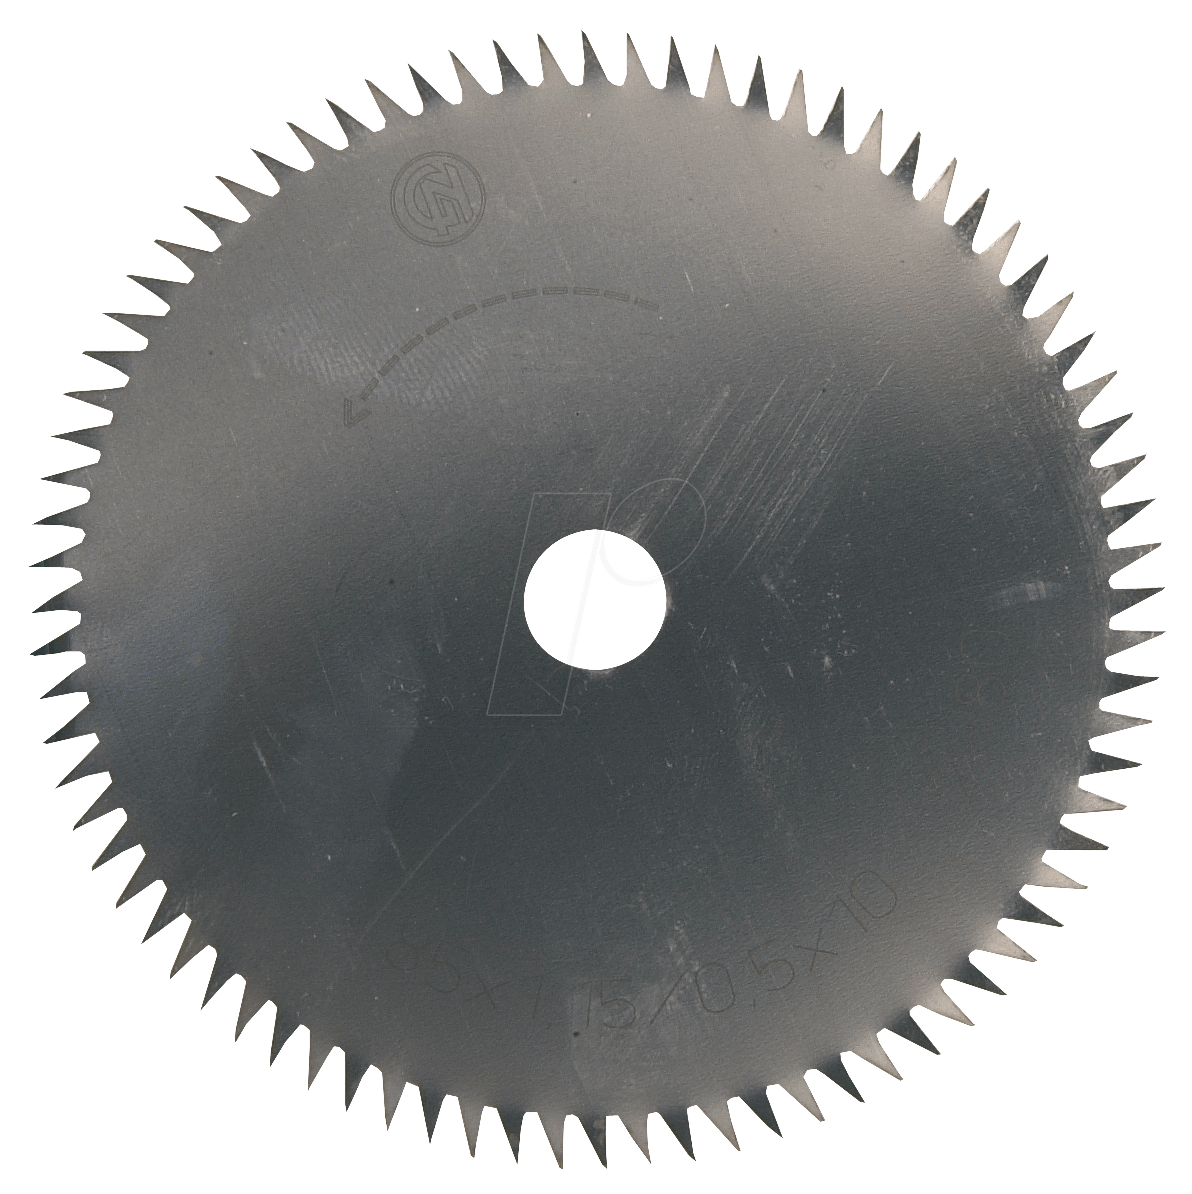 Circular saw blade black and white png. Proxxon mm at reichelt